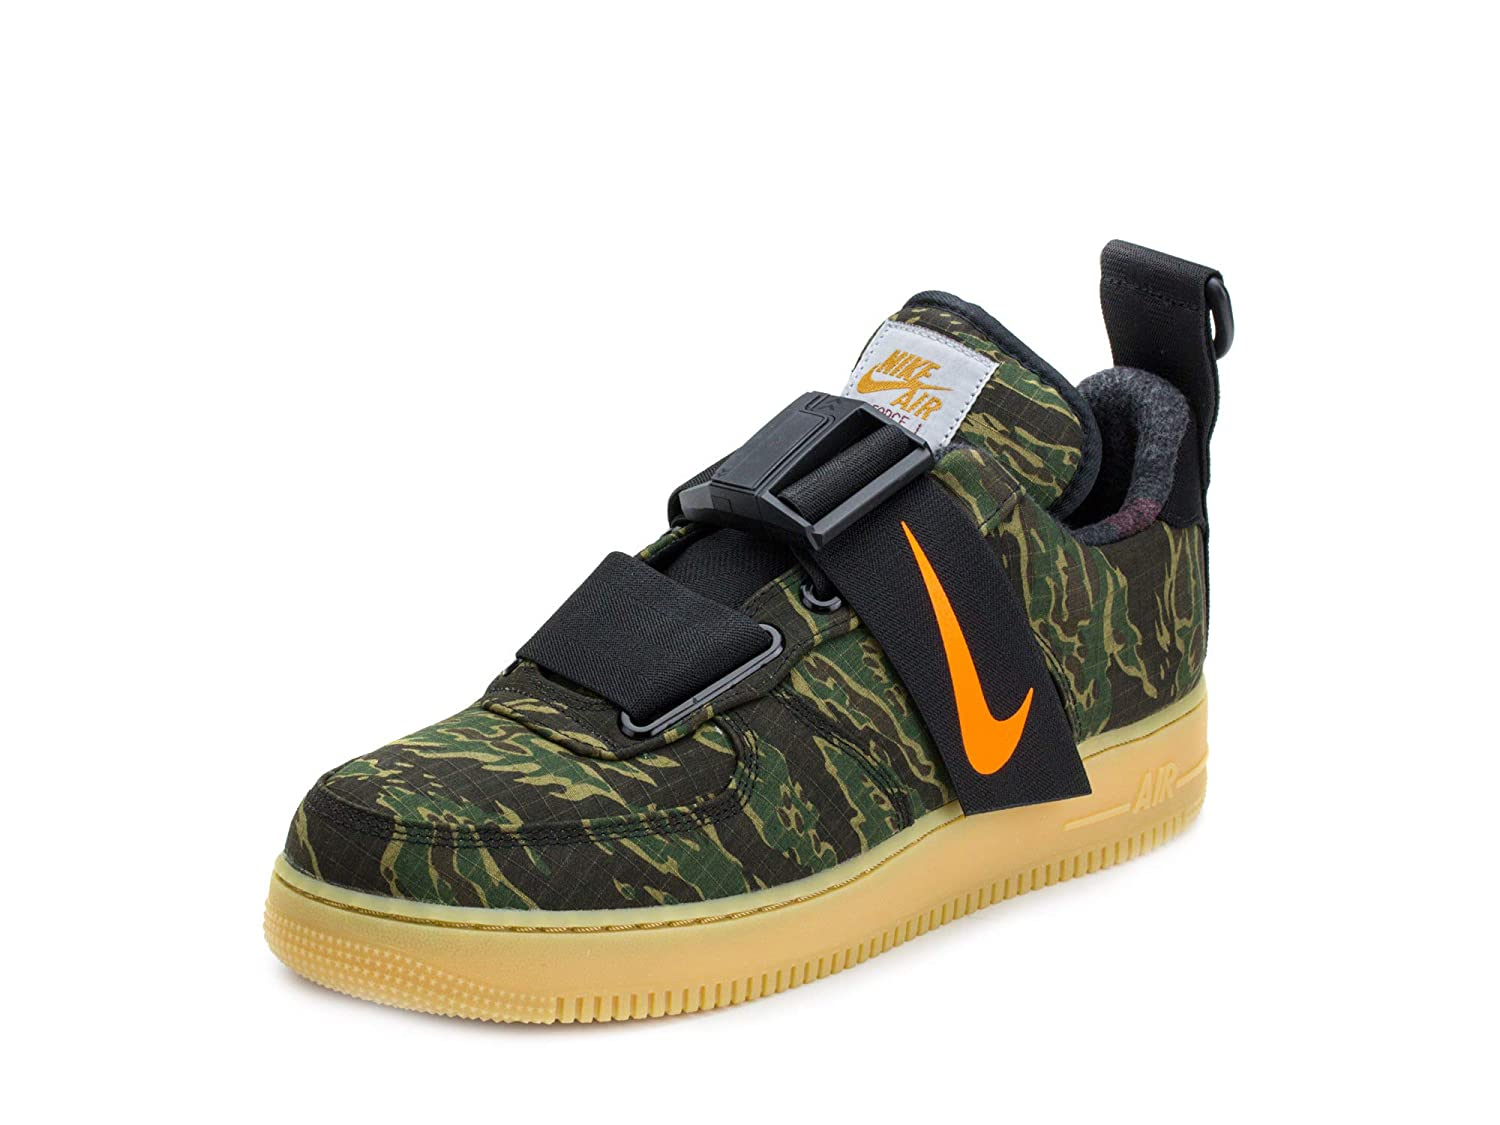 033dc4ad1078b Amazon.com | Nike Men's Air Force 1 UT Low PRM WIP Basketball Shoe |  Fashion Sneakers